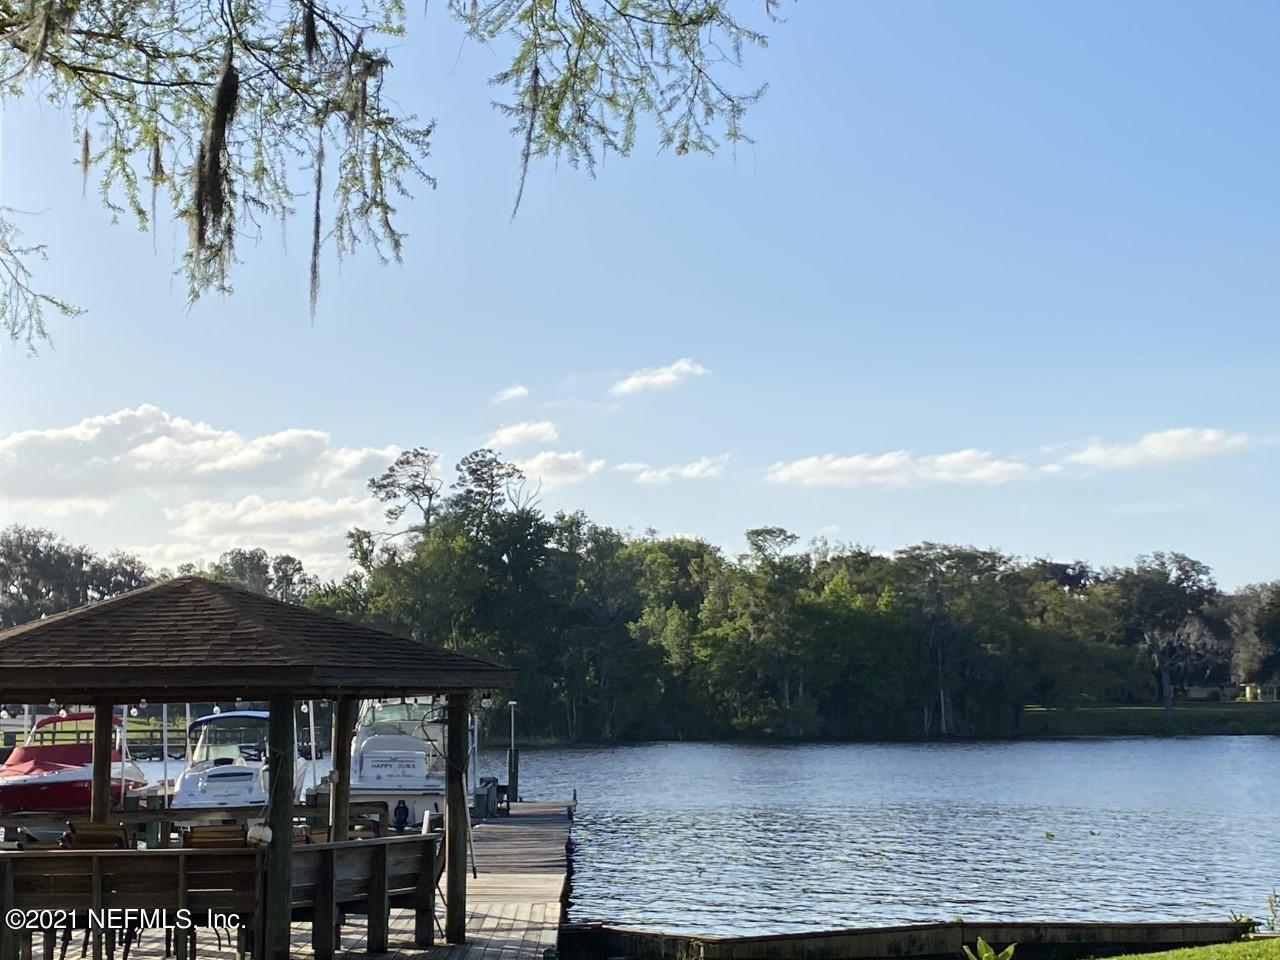 122 GOVERNOR, GREEN COVE SPRINGS, FLORIDA 32043, 2 Bedrooms Bedrooms, ,2 BathroomsBathrooms,Residential,For sale,GOVERNOR,1101740